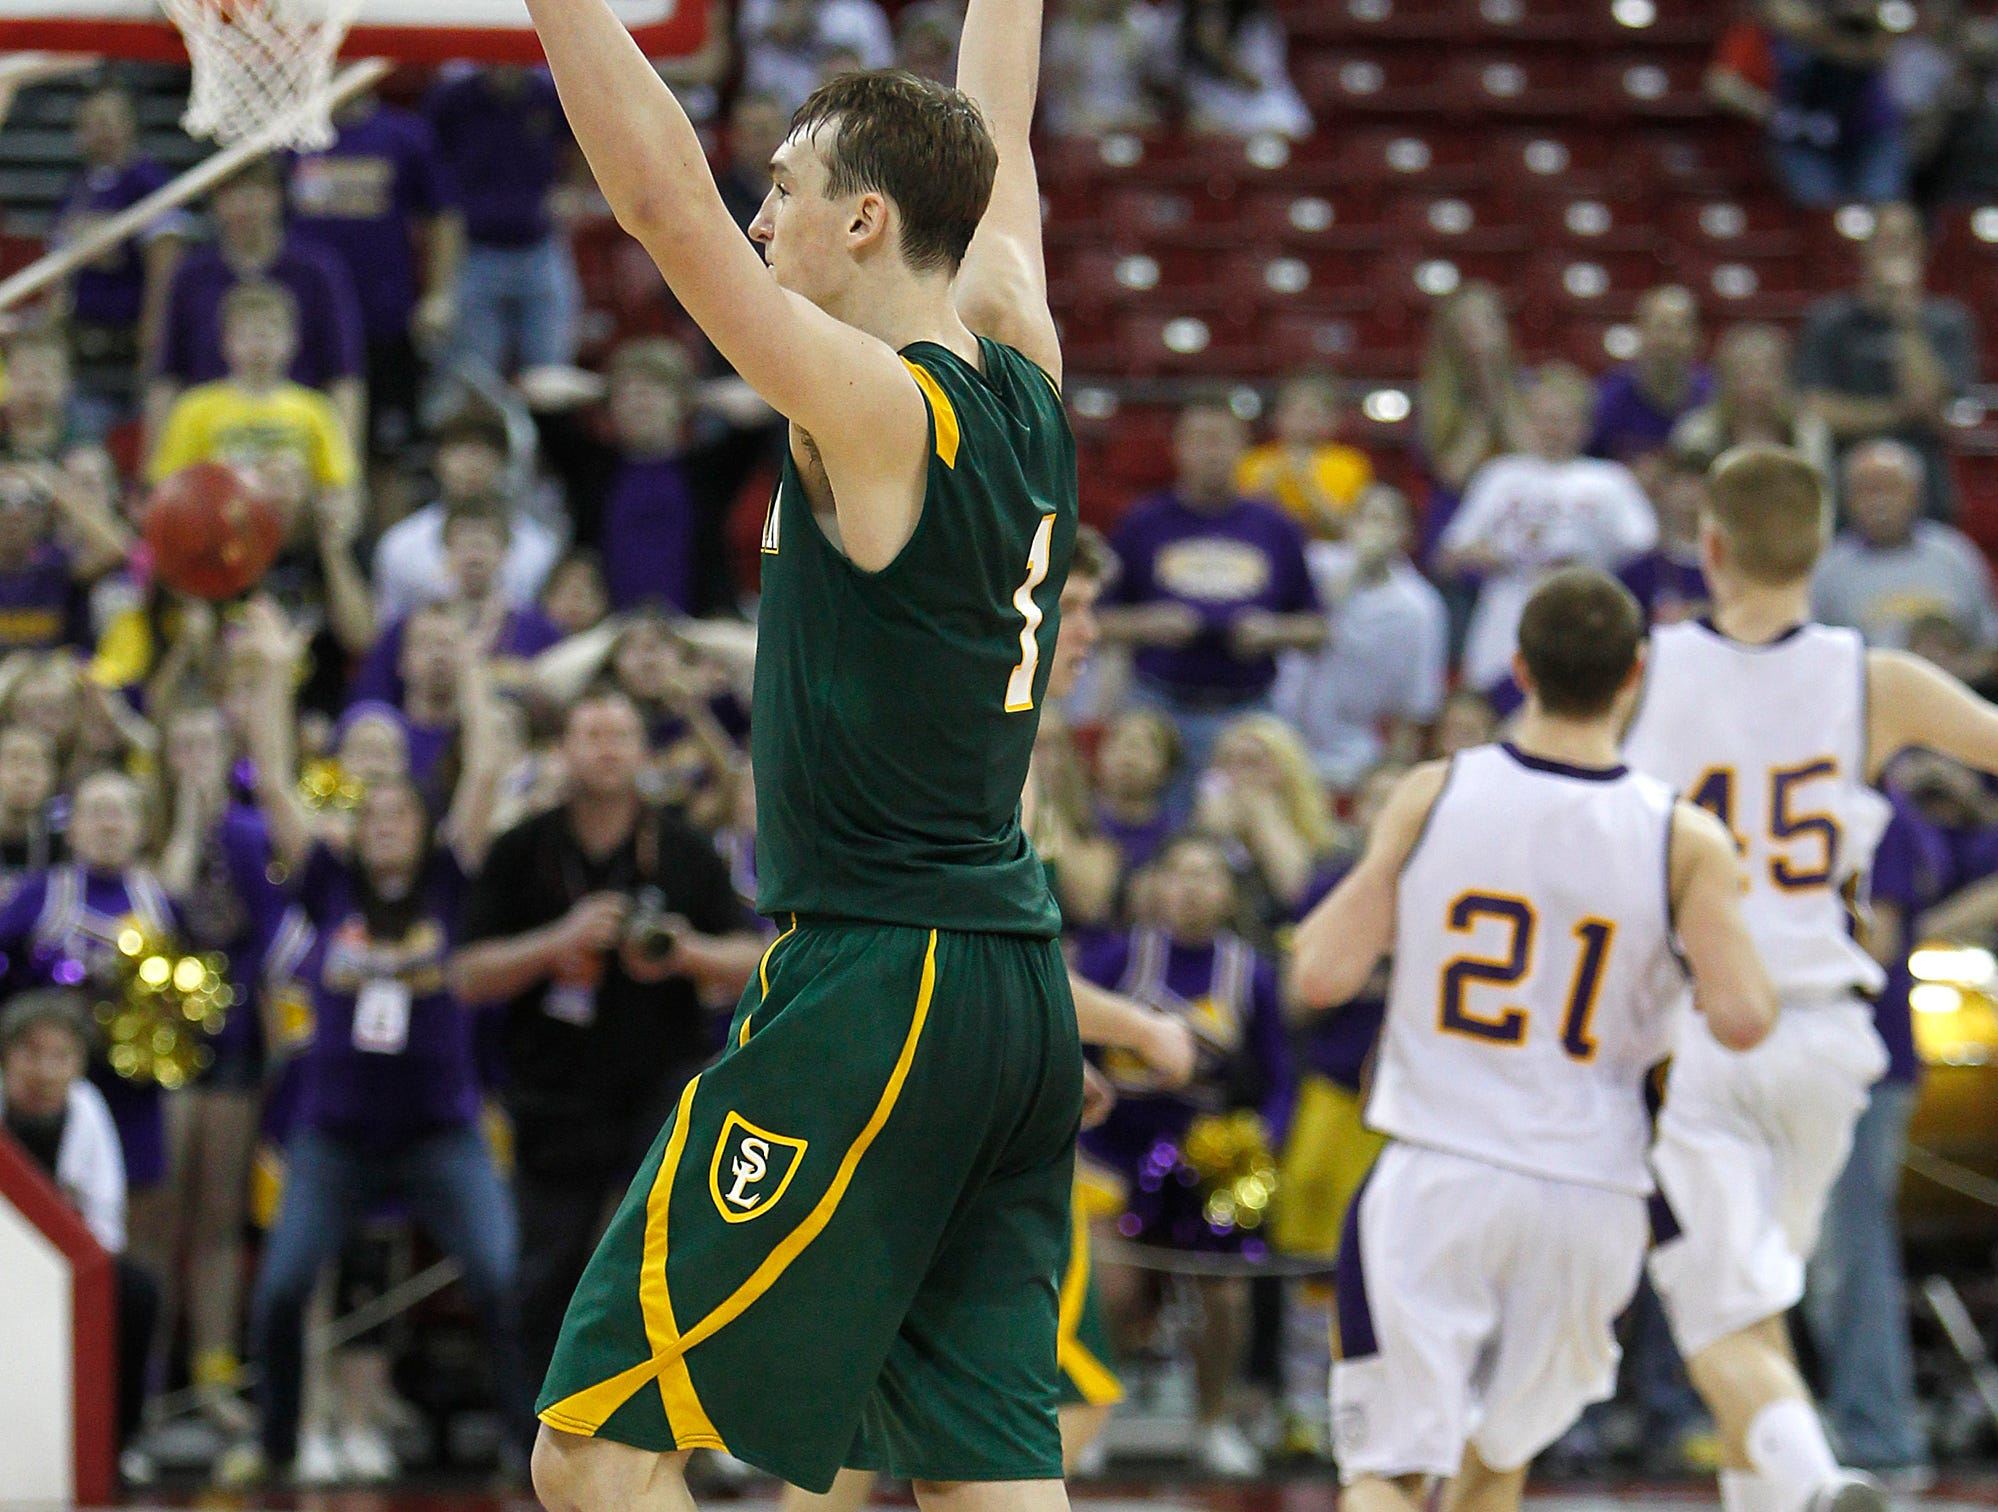 Sheboygan Area Lutheran #1 Sam Dekker his three pointer at the buzzer to defeat Racine Lutheran for the 2012 Division 5 state championship at the Kohl Center in Madison.